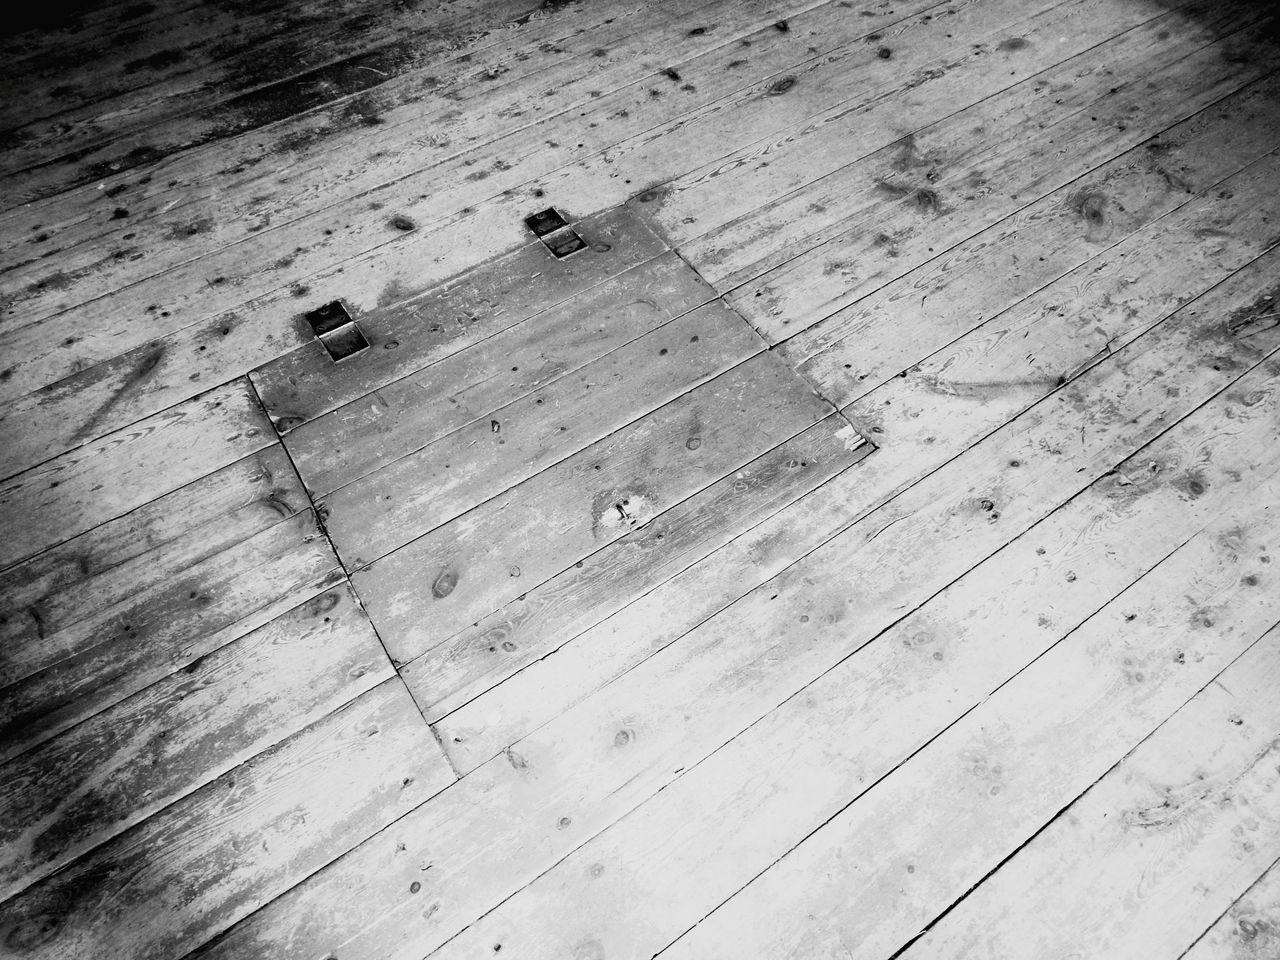 Trap Trapped Trapdoor Trap Door Wood - Material No People Textured  Backgrounds Wood Wood Floor Black And White Mysterious Mystery Horror Suspense Door Creepy Monochrome Calm Calm And Quiet Eerie Eerie Beautiful Unnerving Wooden Wooden Texture EyeEmNewHere